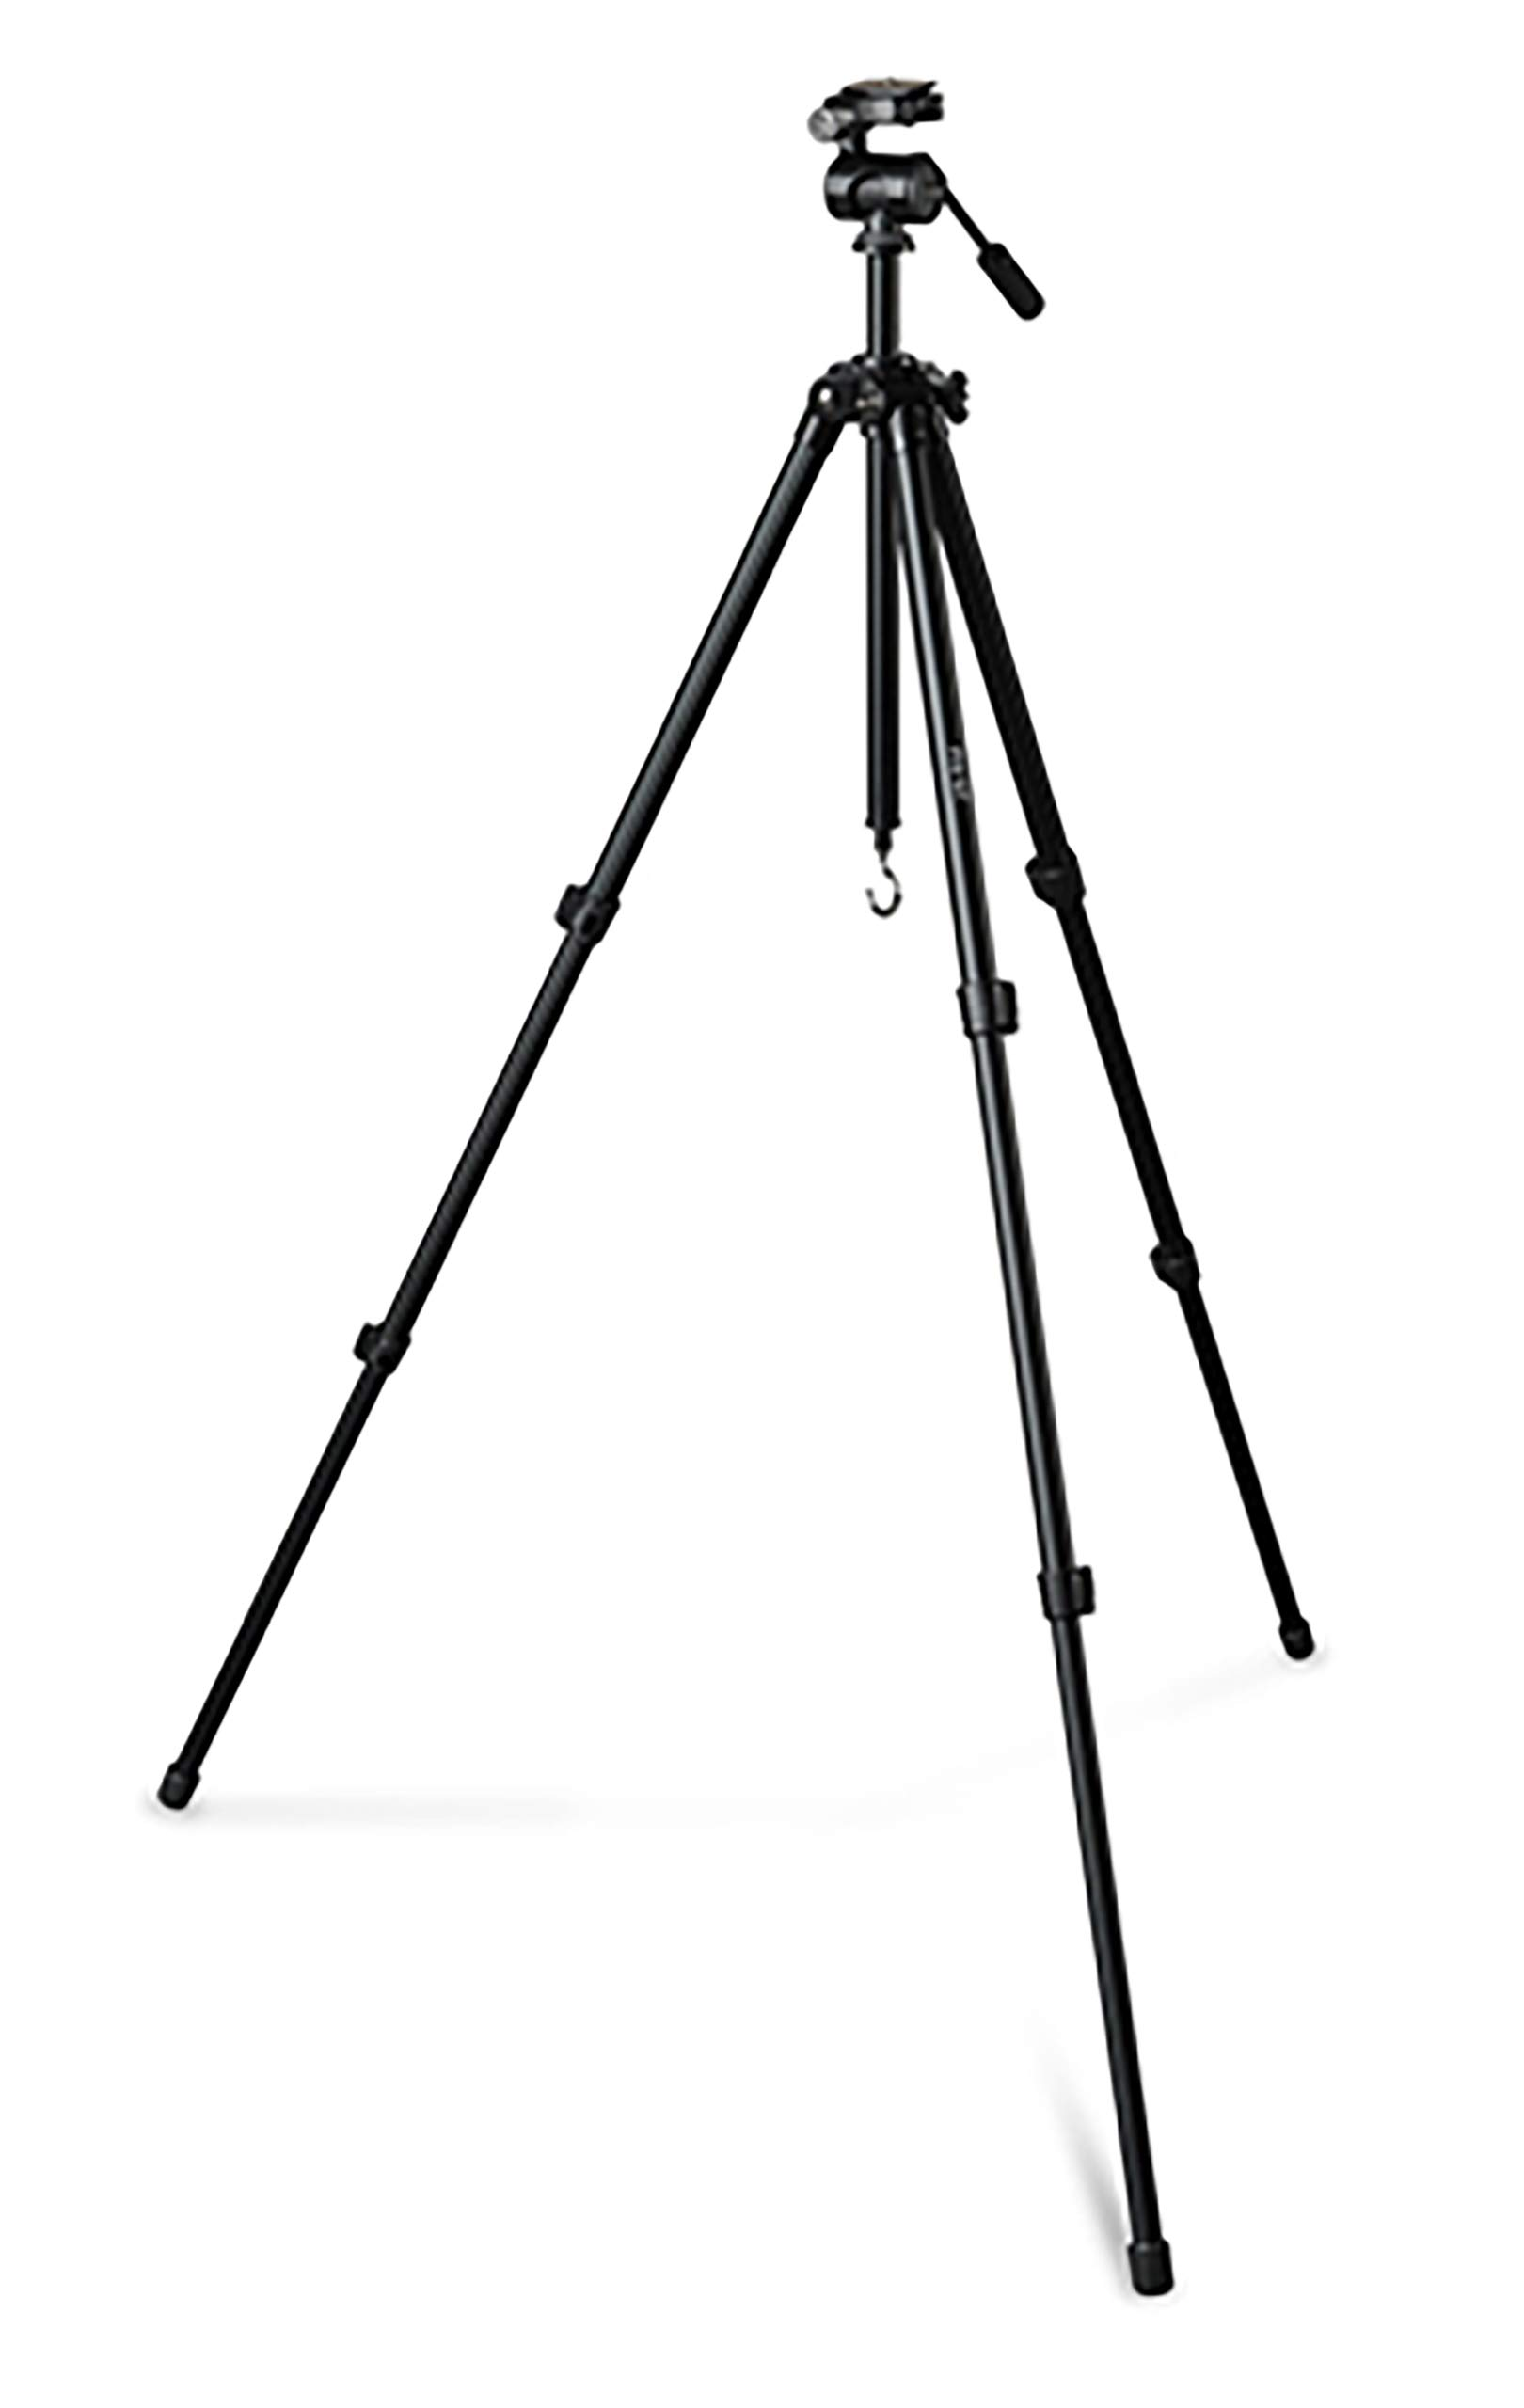 Vortex Optics Pro GT Tripod by Vortex Optics